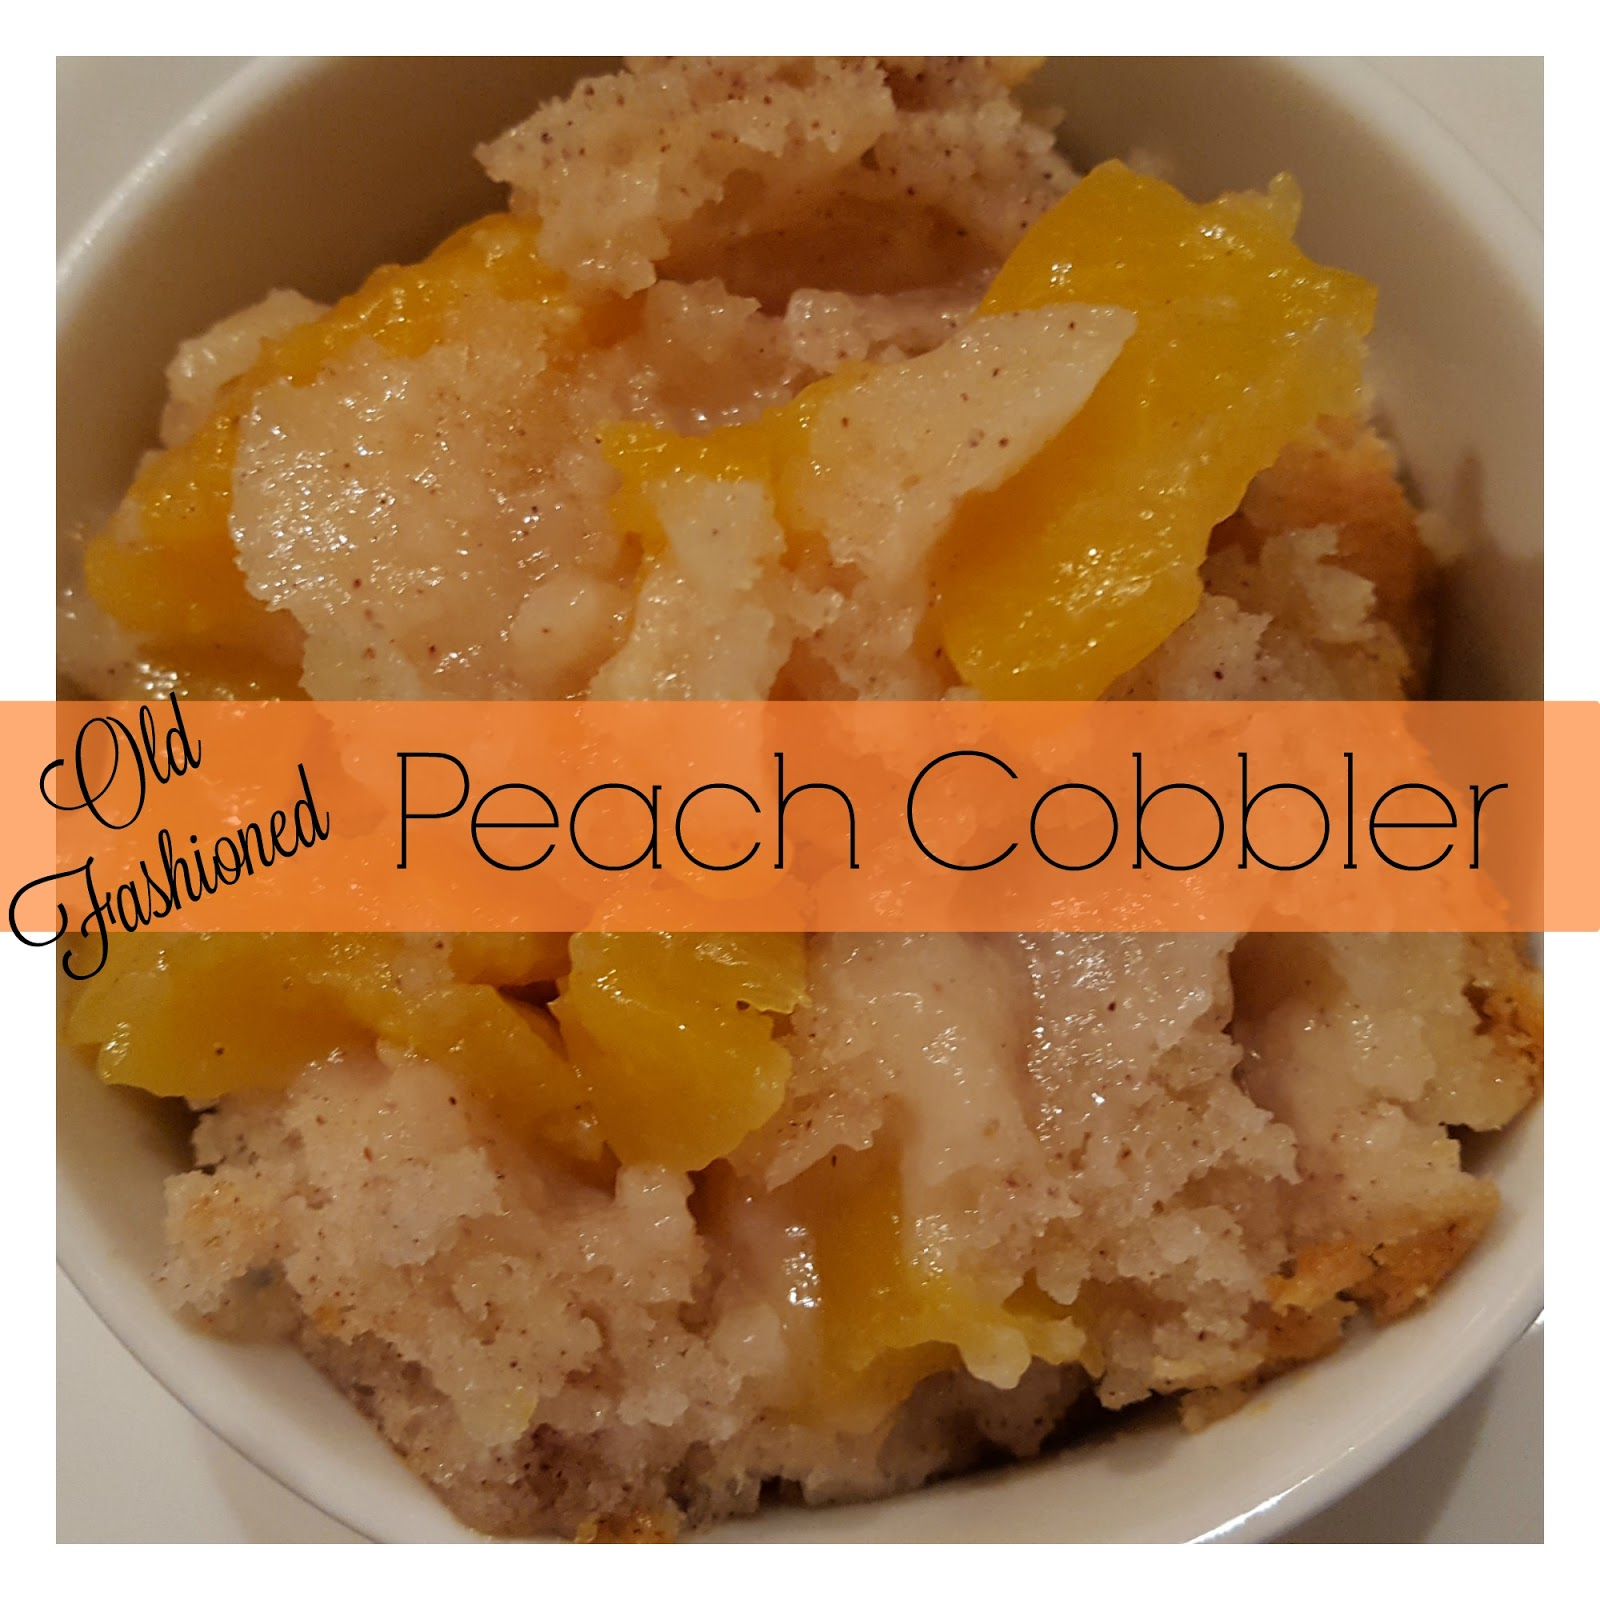 Julia's Simply Southern: Old Fashioned Peach Cobbler